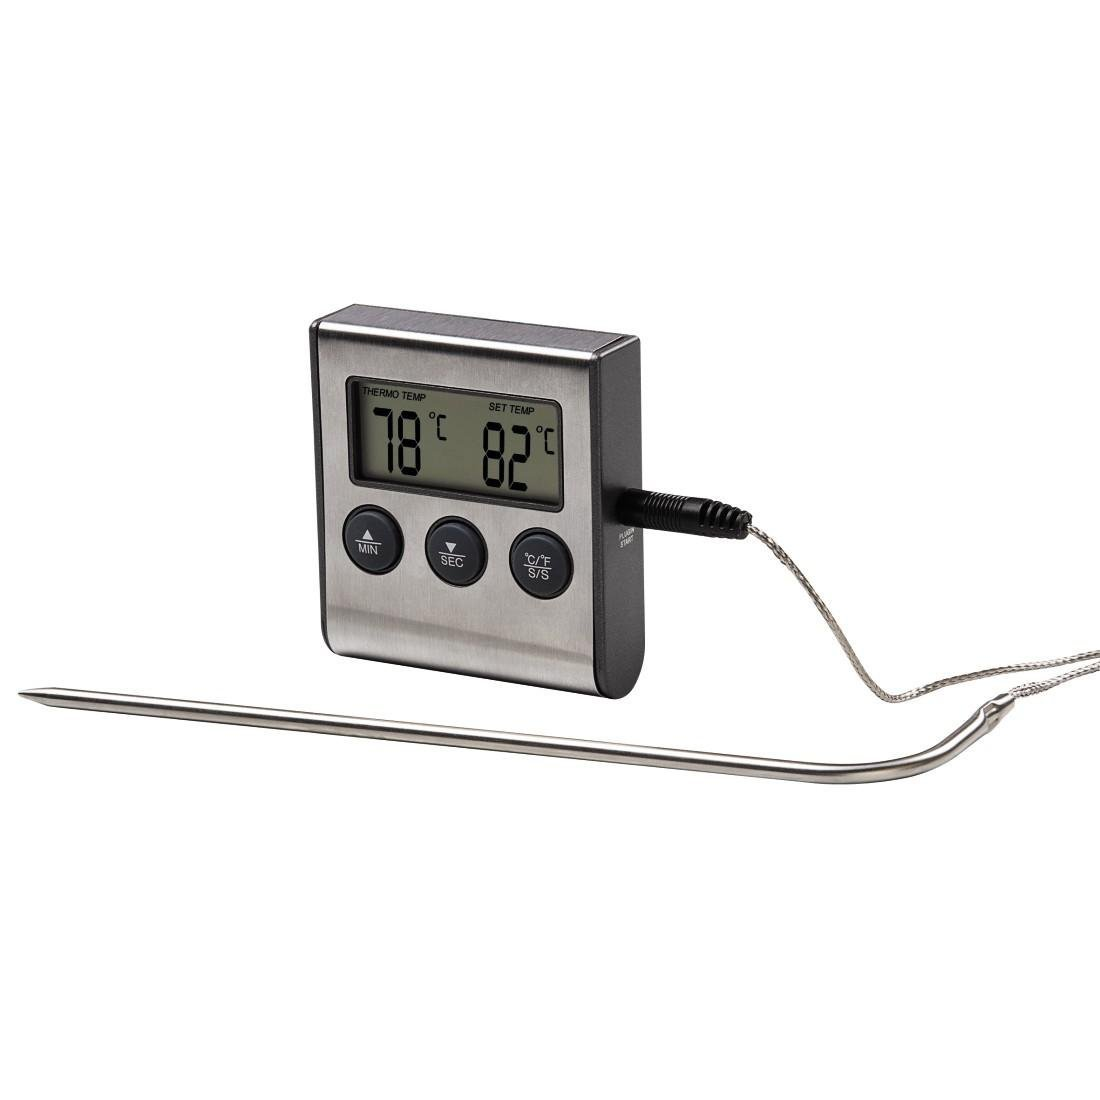 xavax 2in1 digitales bratenthermometer mit k chenuhr. Black Bedroom Furniture Sets. Home Design Ideas